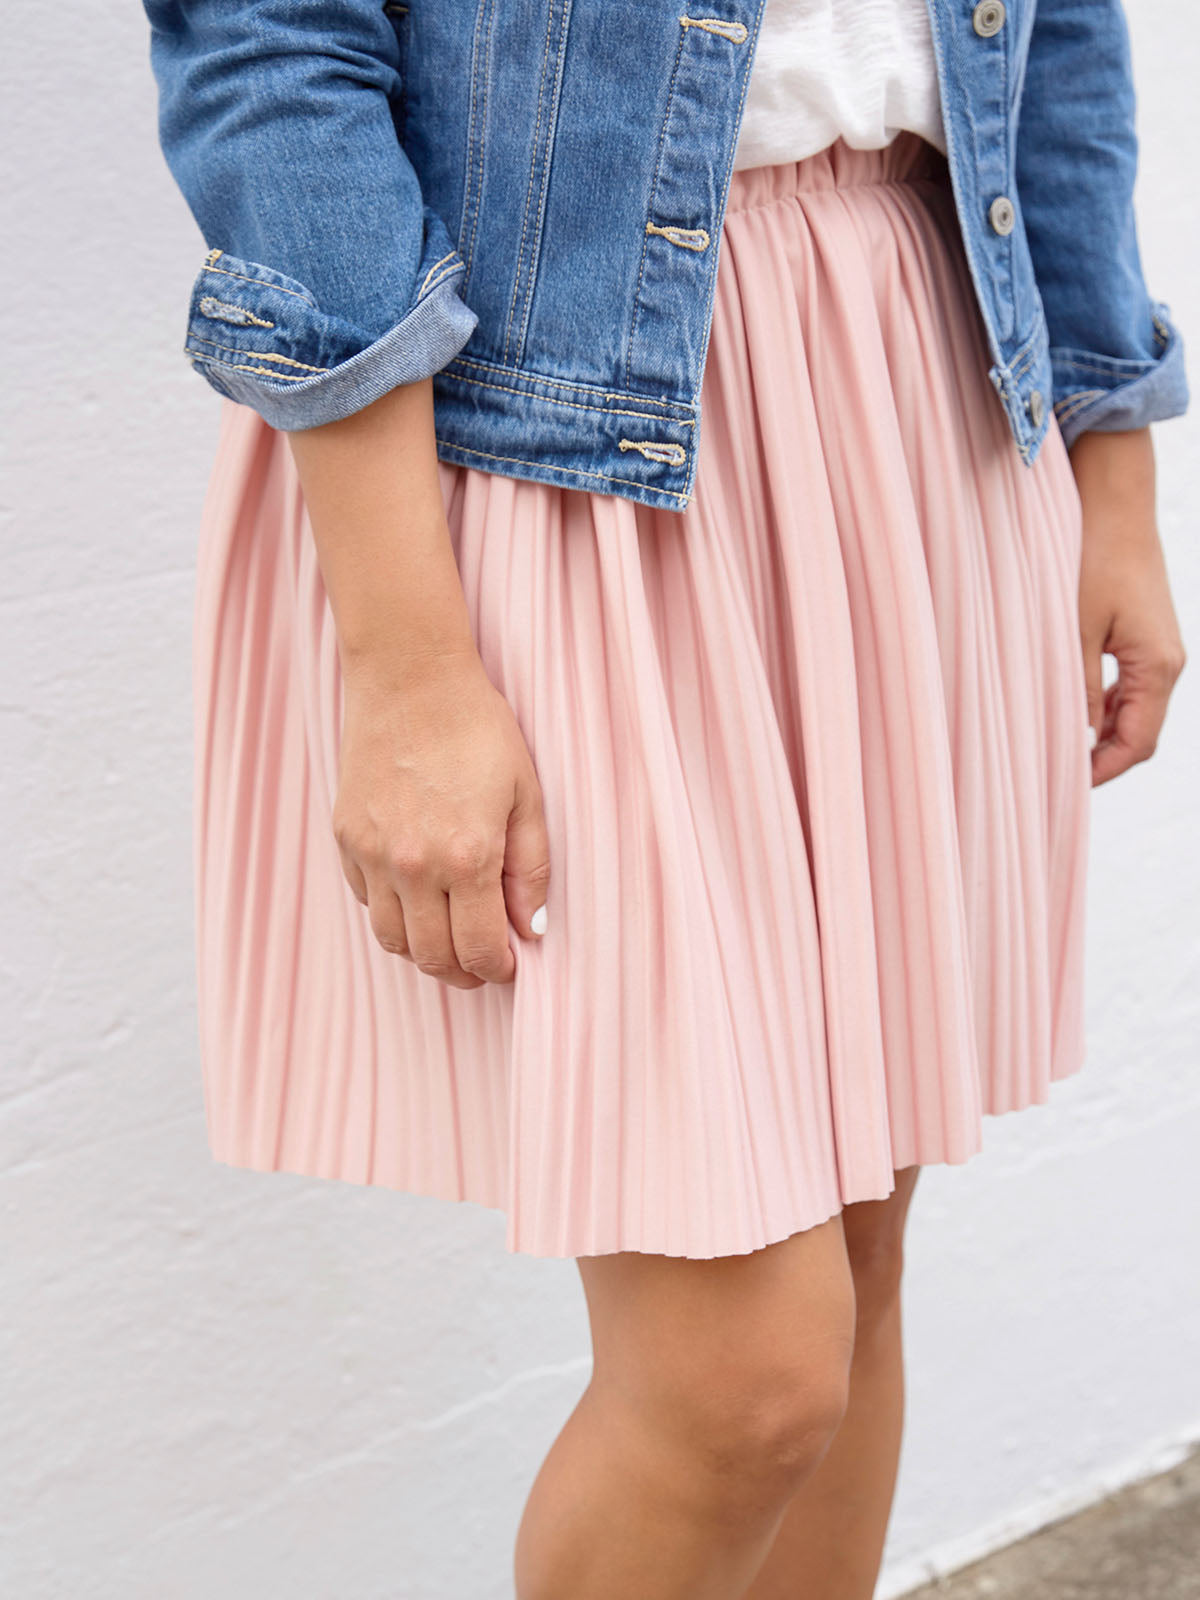 STARS IN OUR EYES PLEATED SKIRT IN PINK